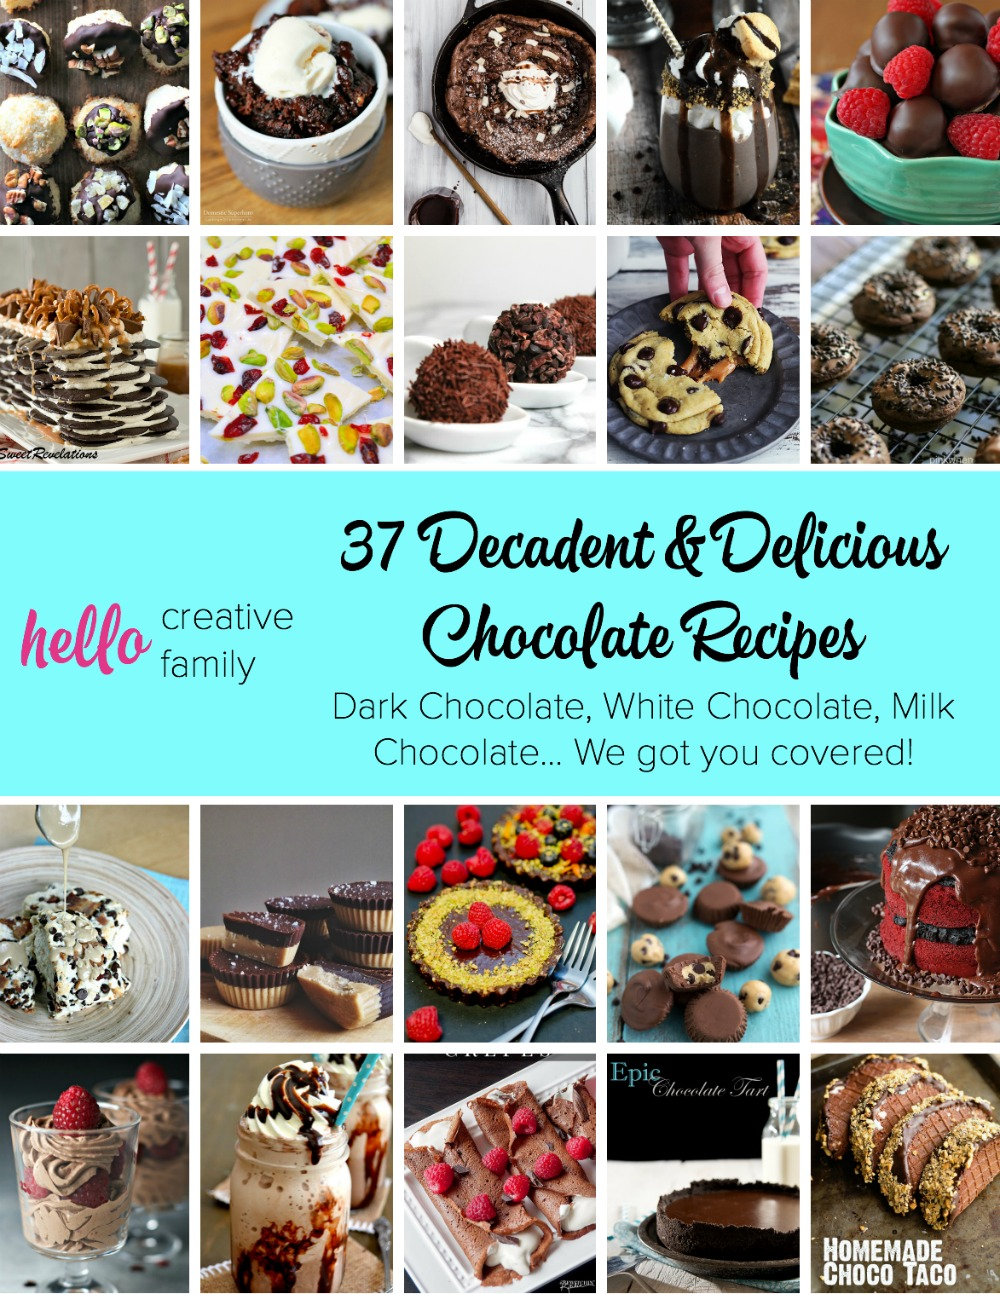 Chocolate is my guilty addiction. I eat, sleep and breath chocolate. This post has so many great chocolate recipes including milkshakes, cocktails, cakes, cookies, ice cream and donuts! Whether your a fan of milk chocolate, dark chocolate or white chocolate there will be chocolate recipes for you in this post! I'll be making #29 this weekend!